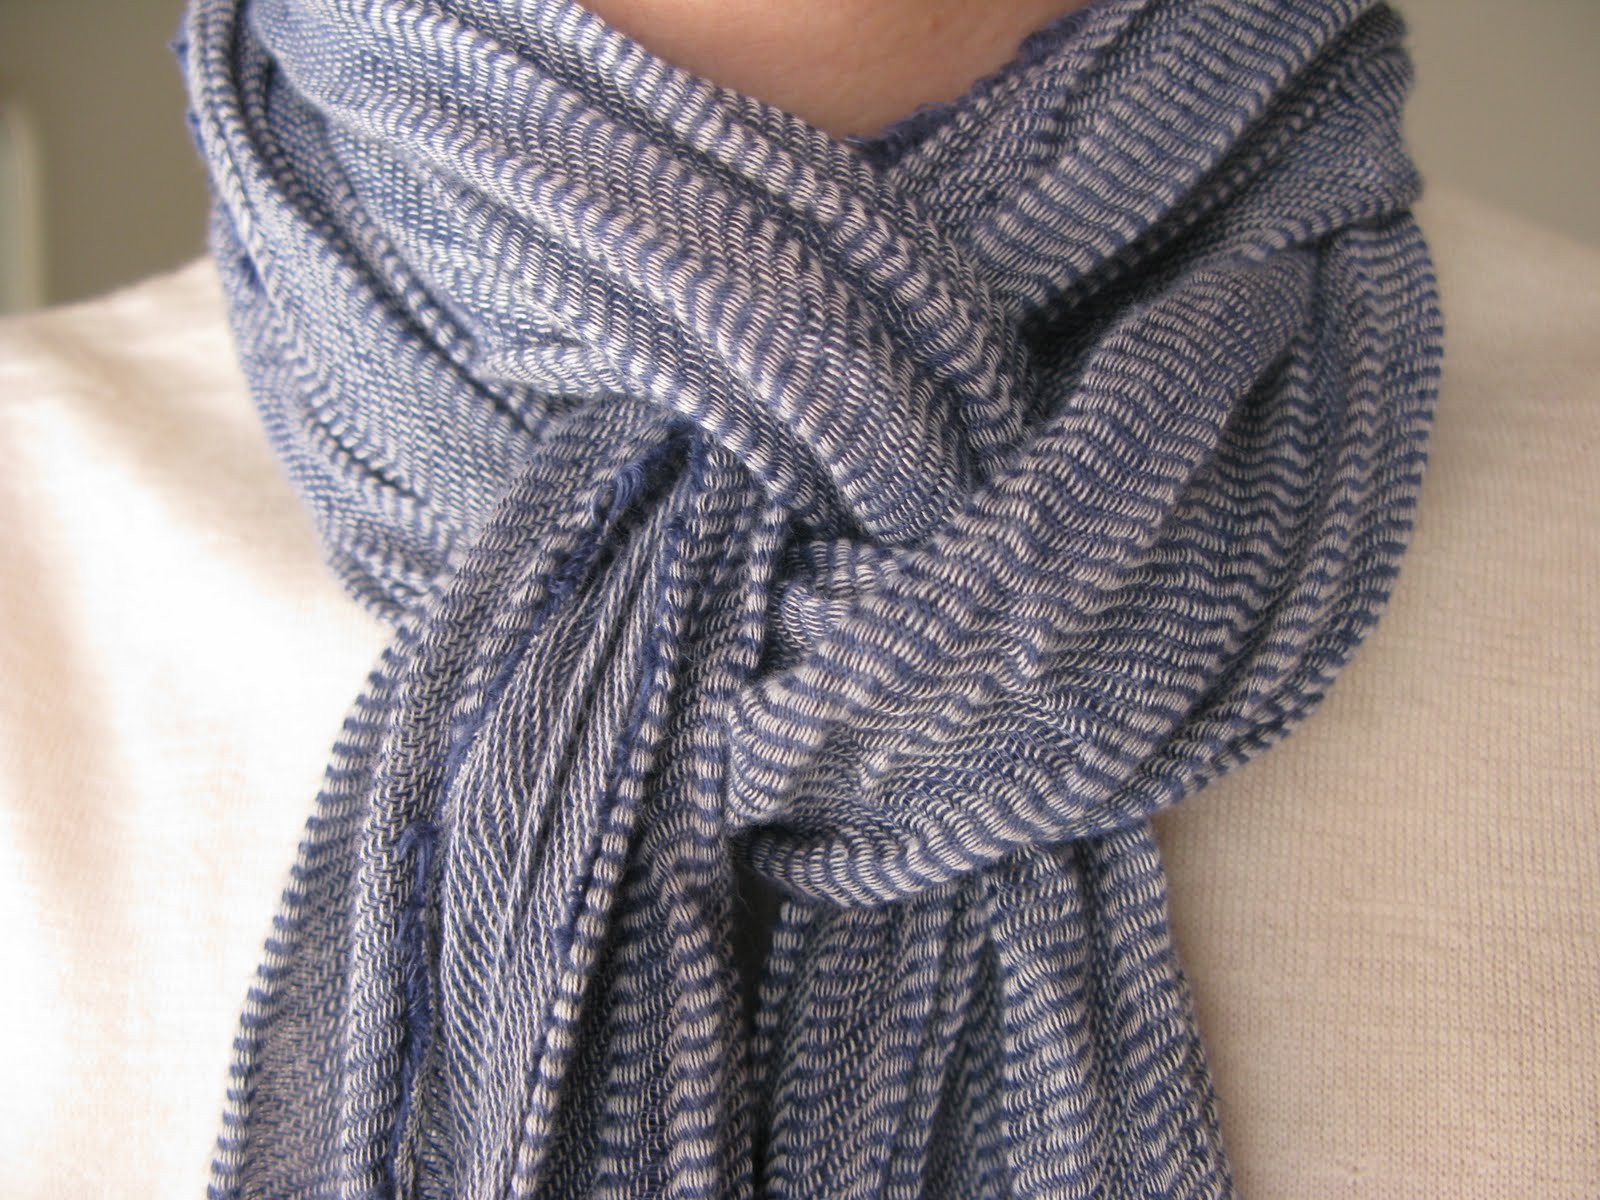 Crochet a scarf  Crochet a scarf is easy and simple